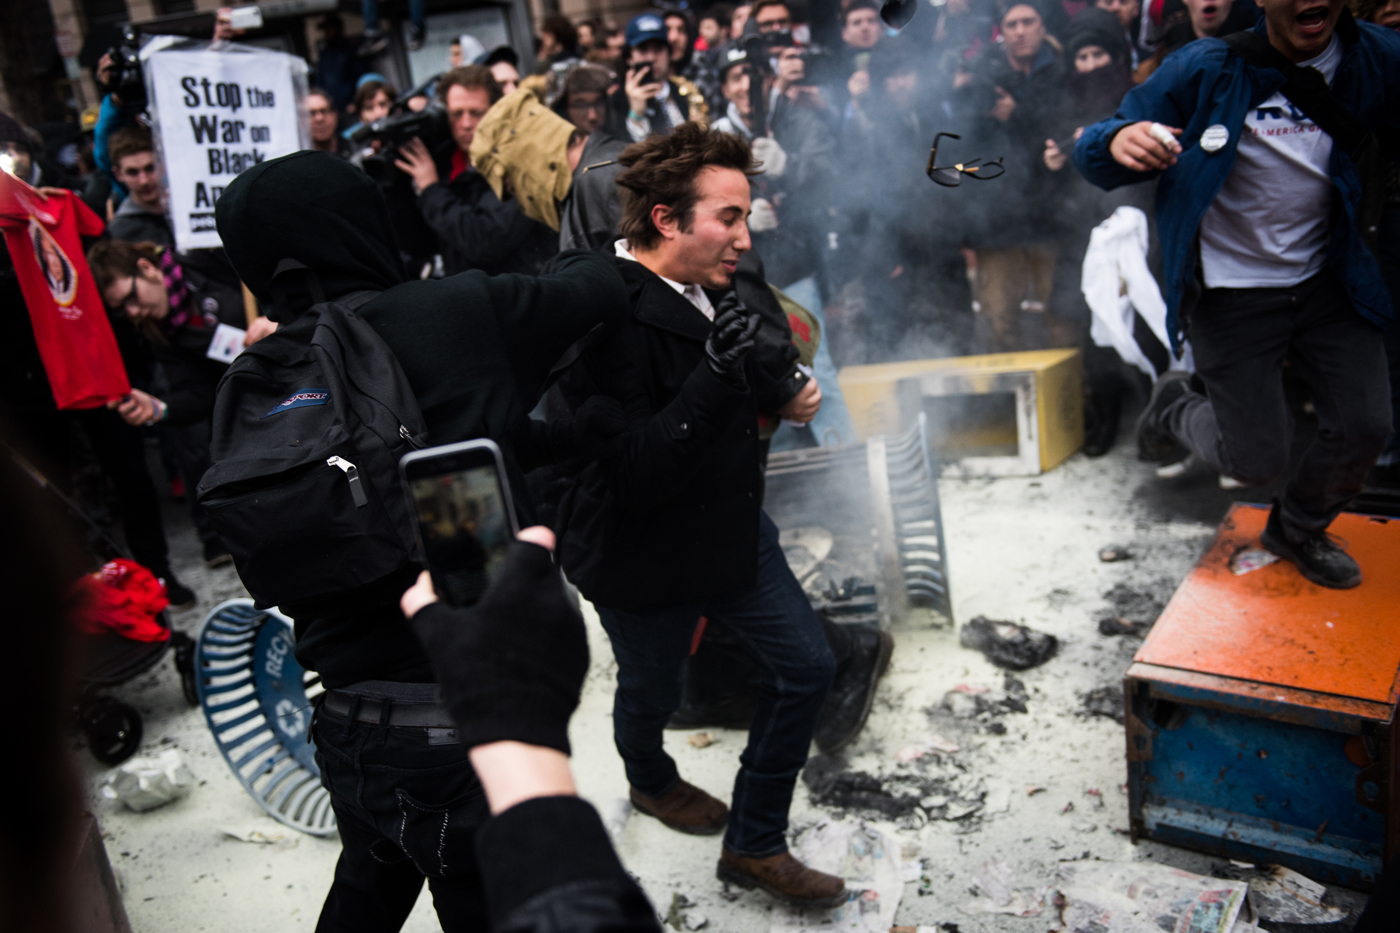 A supporter of President Donald Trump (center) is punched in the face by anarchist protestors after having his hat stolen after Trump's inauguration as the 45th President of the United States in Washington, D.C., on January 20, 2017. The supporter had been talking to the crowd after he put out a fire started during the protests. Credit: Mark Kauzlarich for CNN